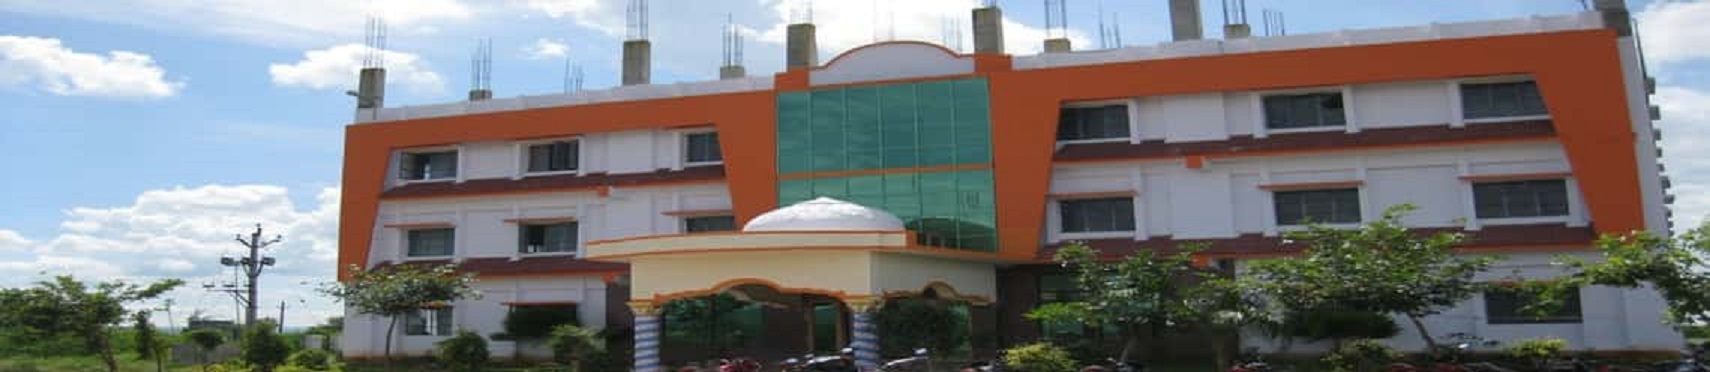 Global Institute of Technology and Management Sciences, kadapa